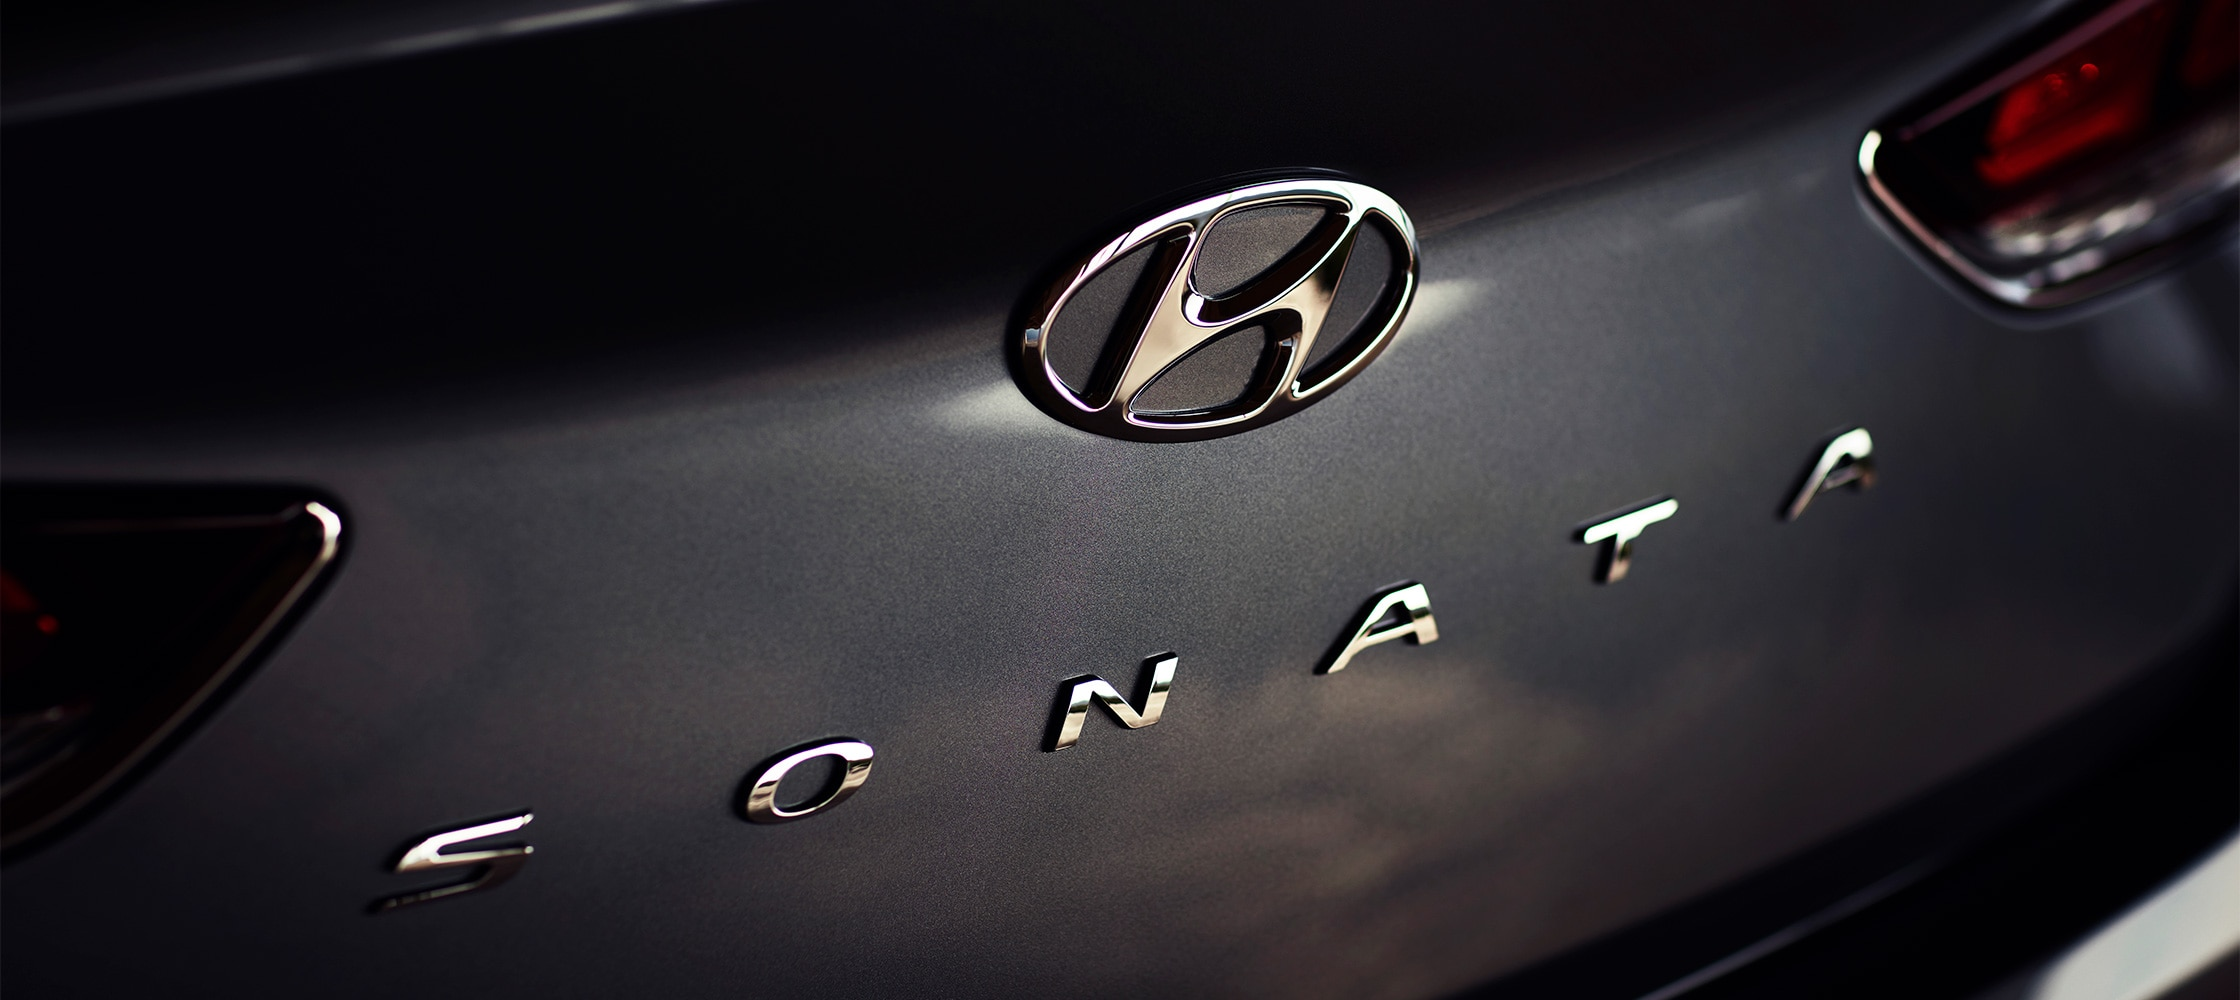 Closeup of the Hyundai 2018 Sonata logo on the car trunk.